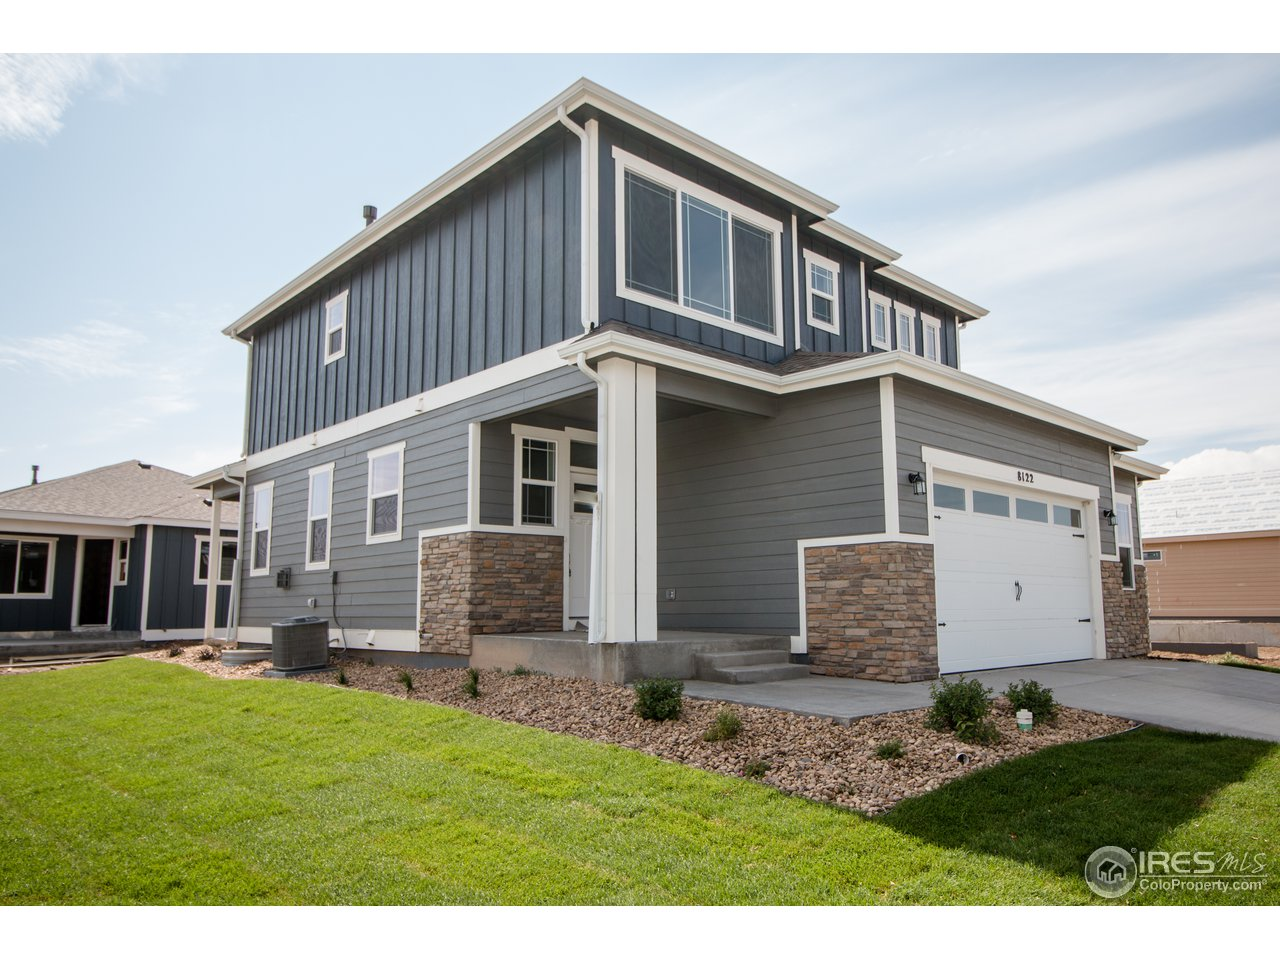 Rare opportunity to own a brand new Baessler Home without the 6-month wait, home is move in ready!  This stunning London has plenty of space for everyone.  The smart design allows for open entertainment on the main level both inside and out.  The second level features 3 bedrooms, 2 baths, and laundry. This home is full of upgrades including flooring, quartz counter tops, a custom fire place and much more!  With mountain views and close access to the Poudre Trail, this home is a must see!